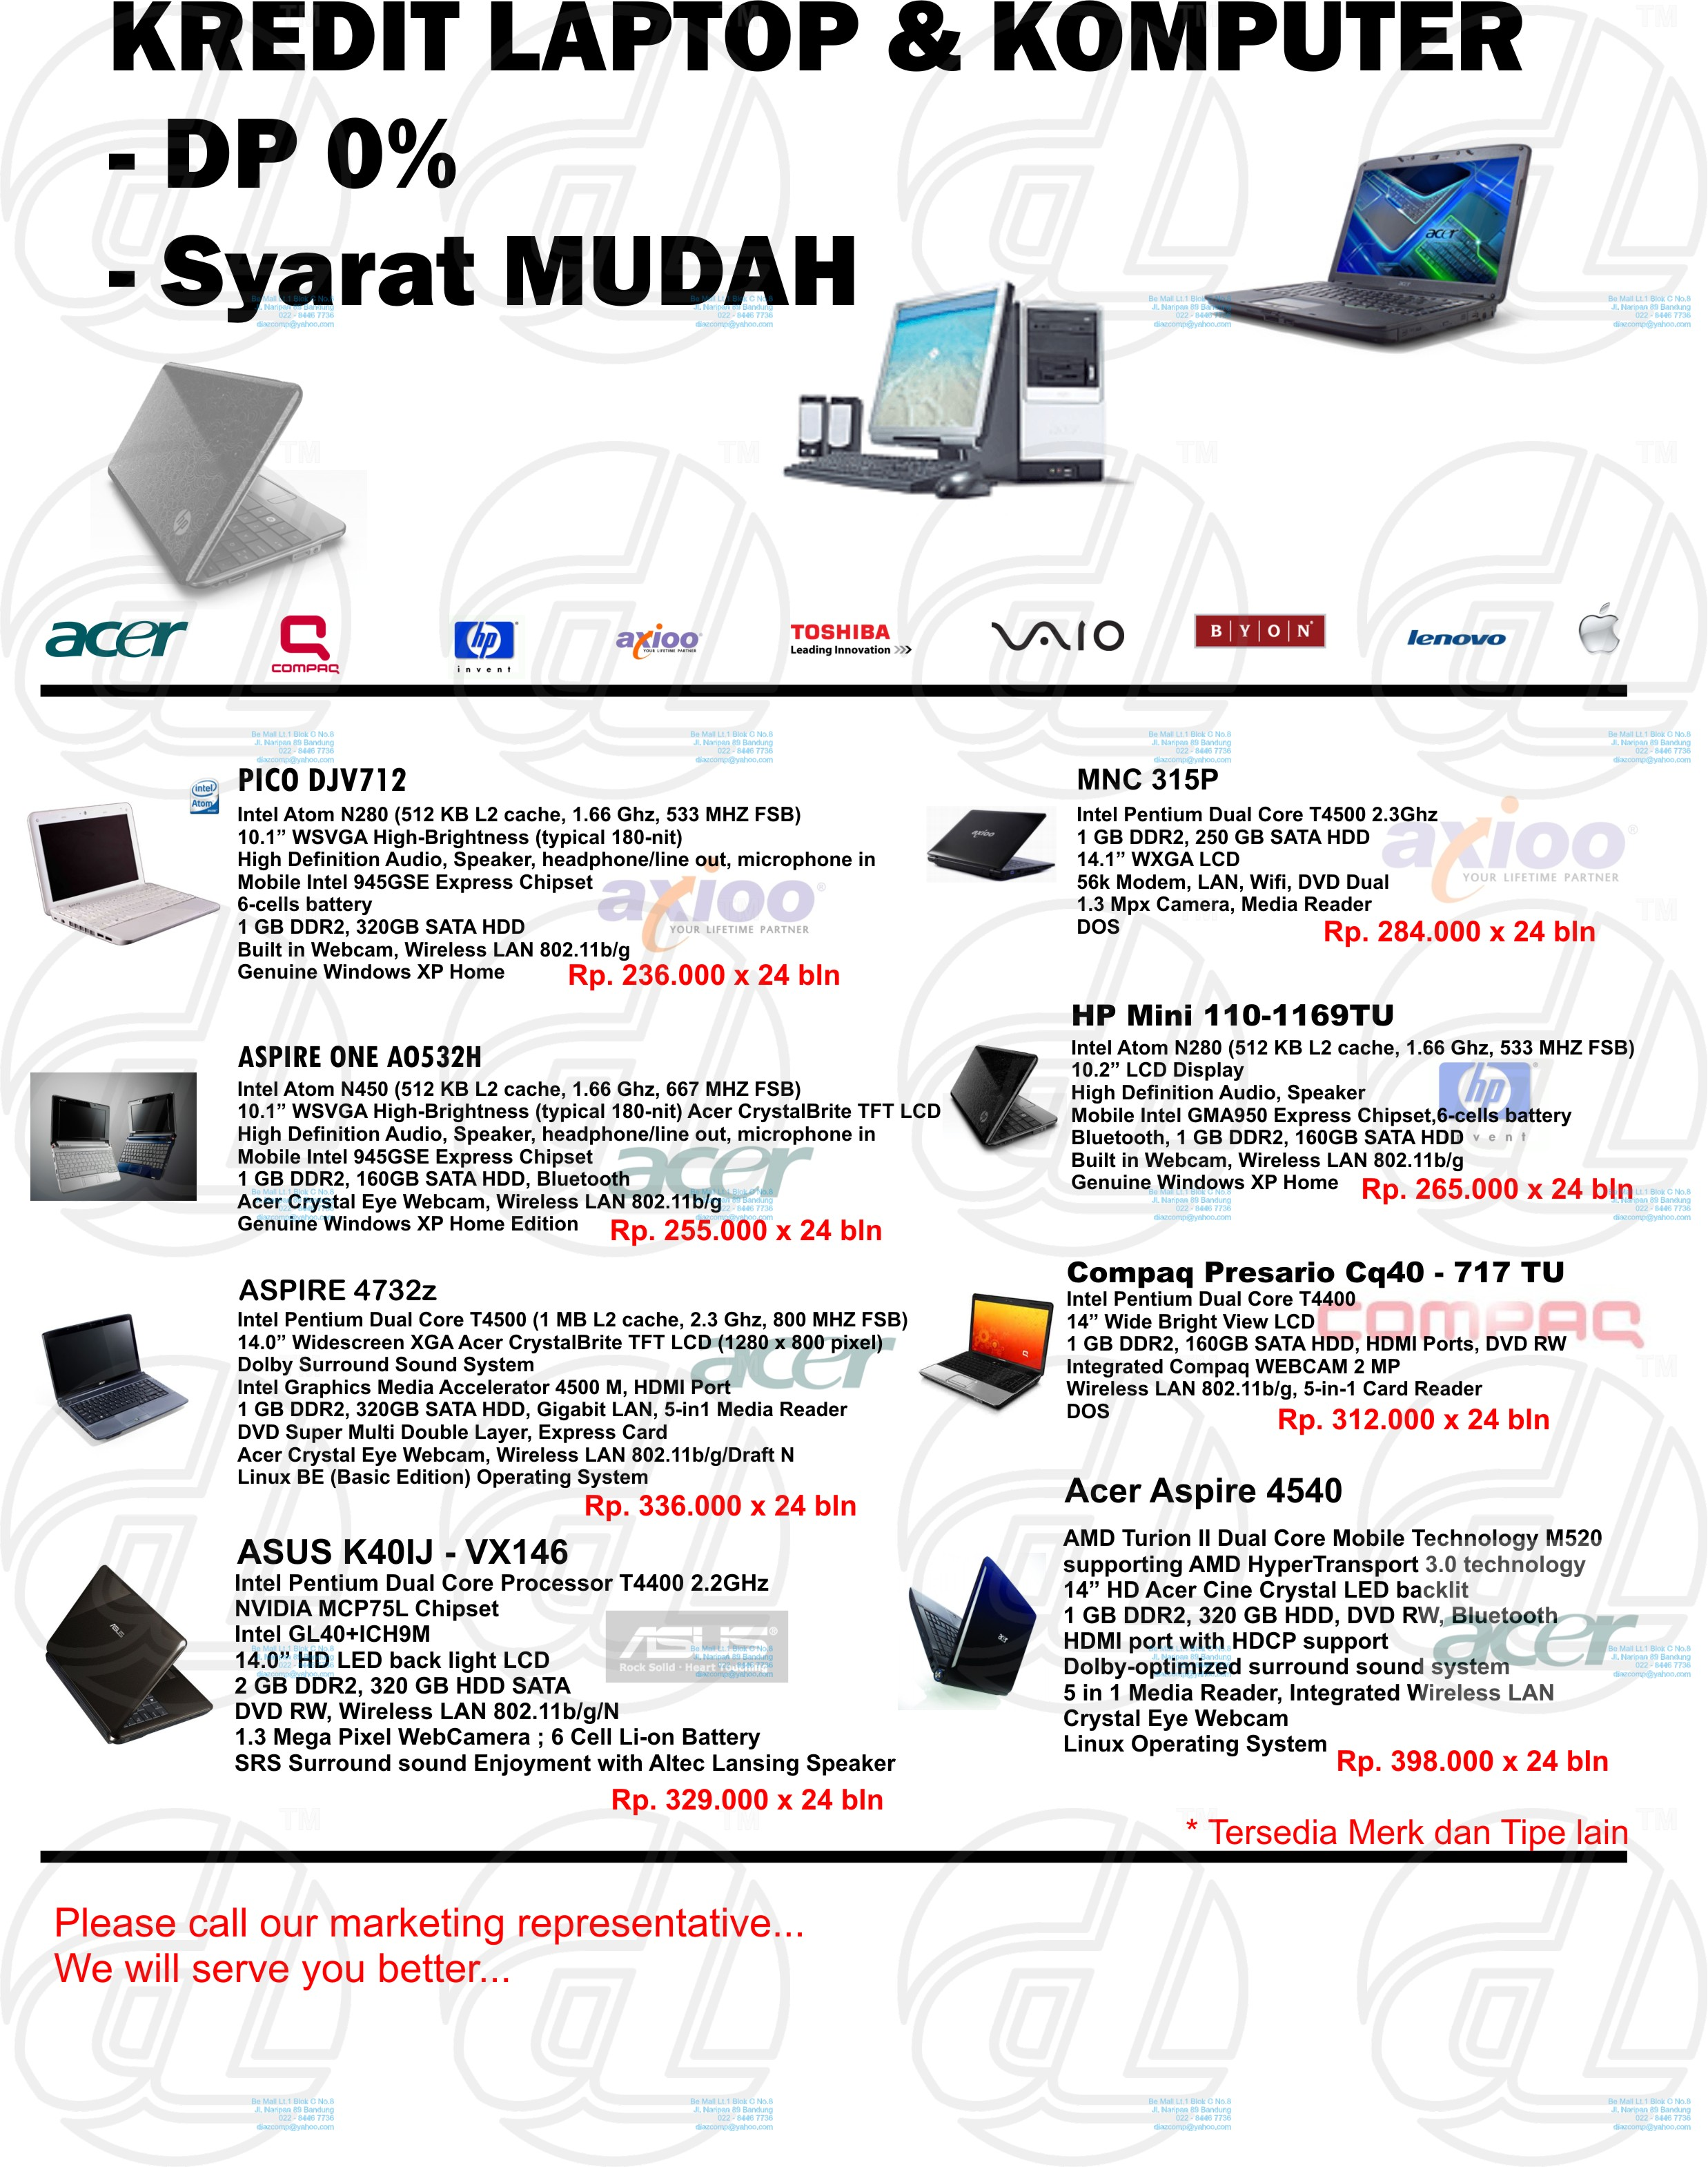 Kredit Laptop Murah